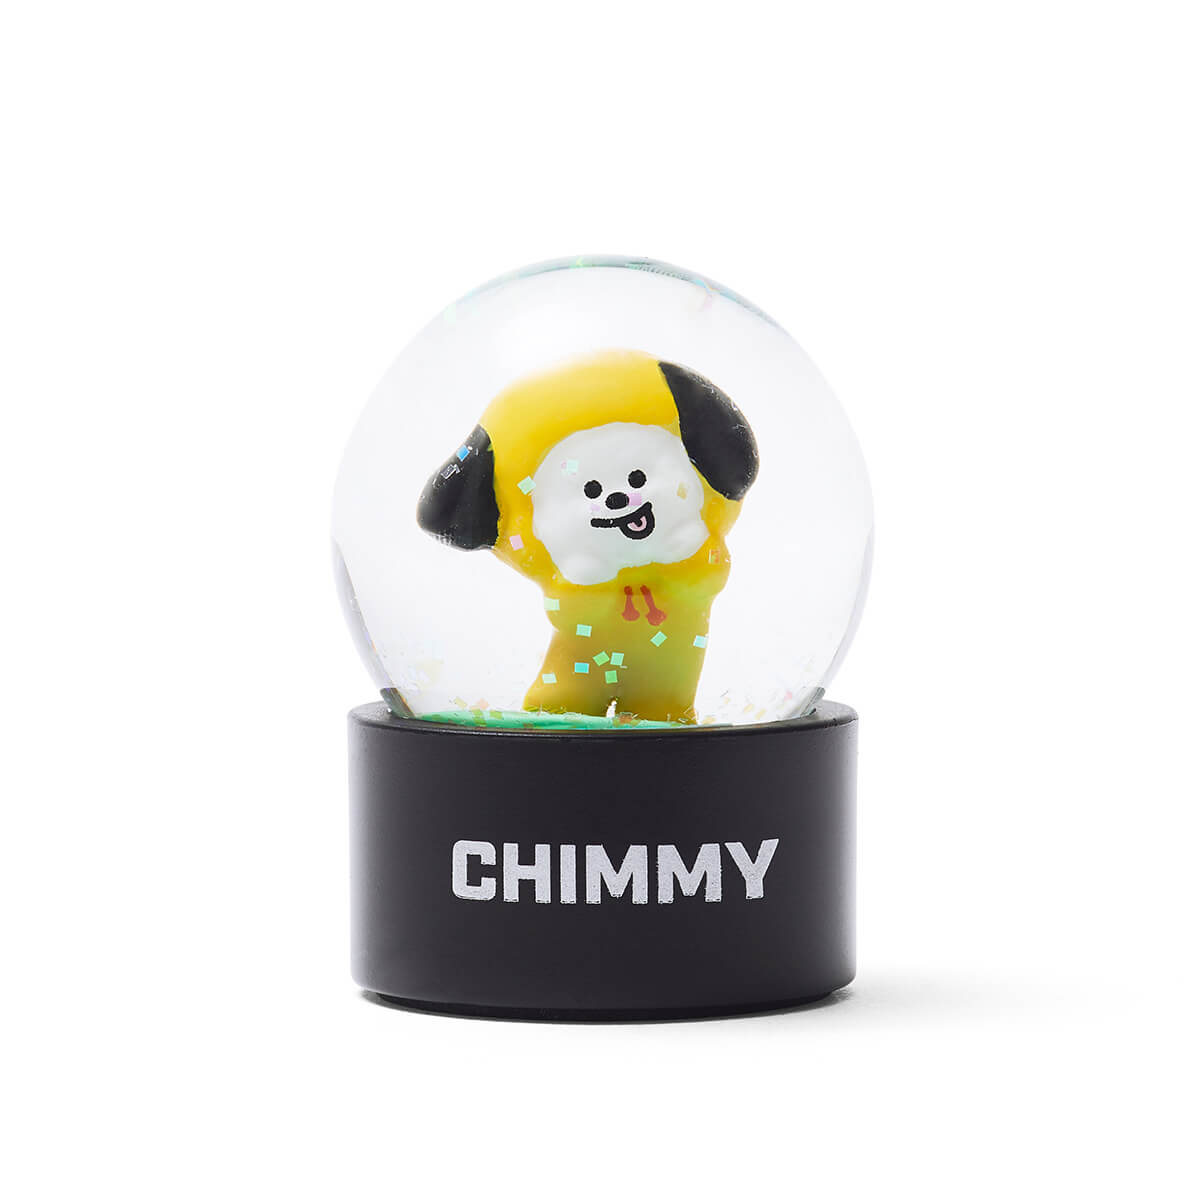 BT21 CHIMMY Mini Water Globe